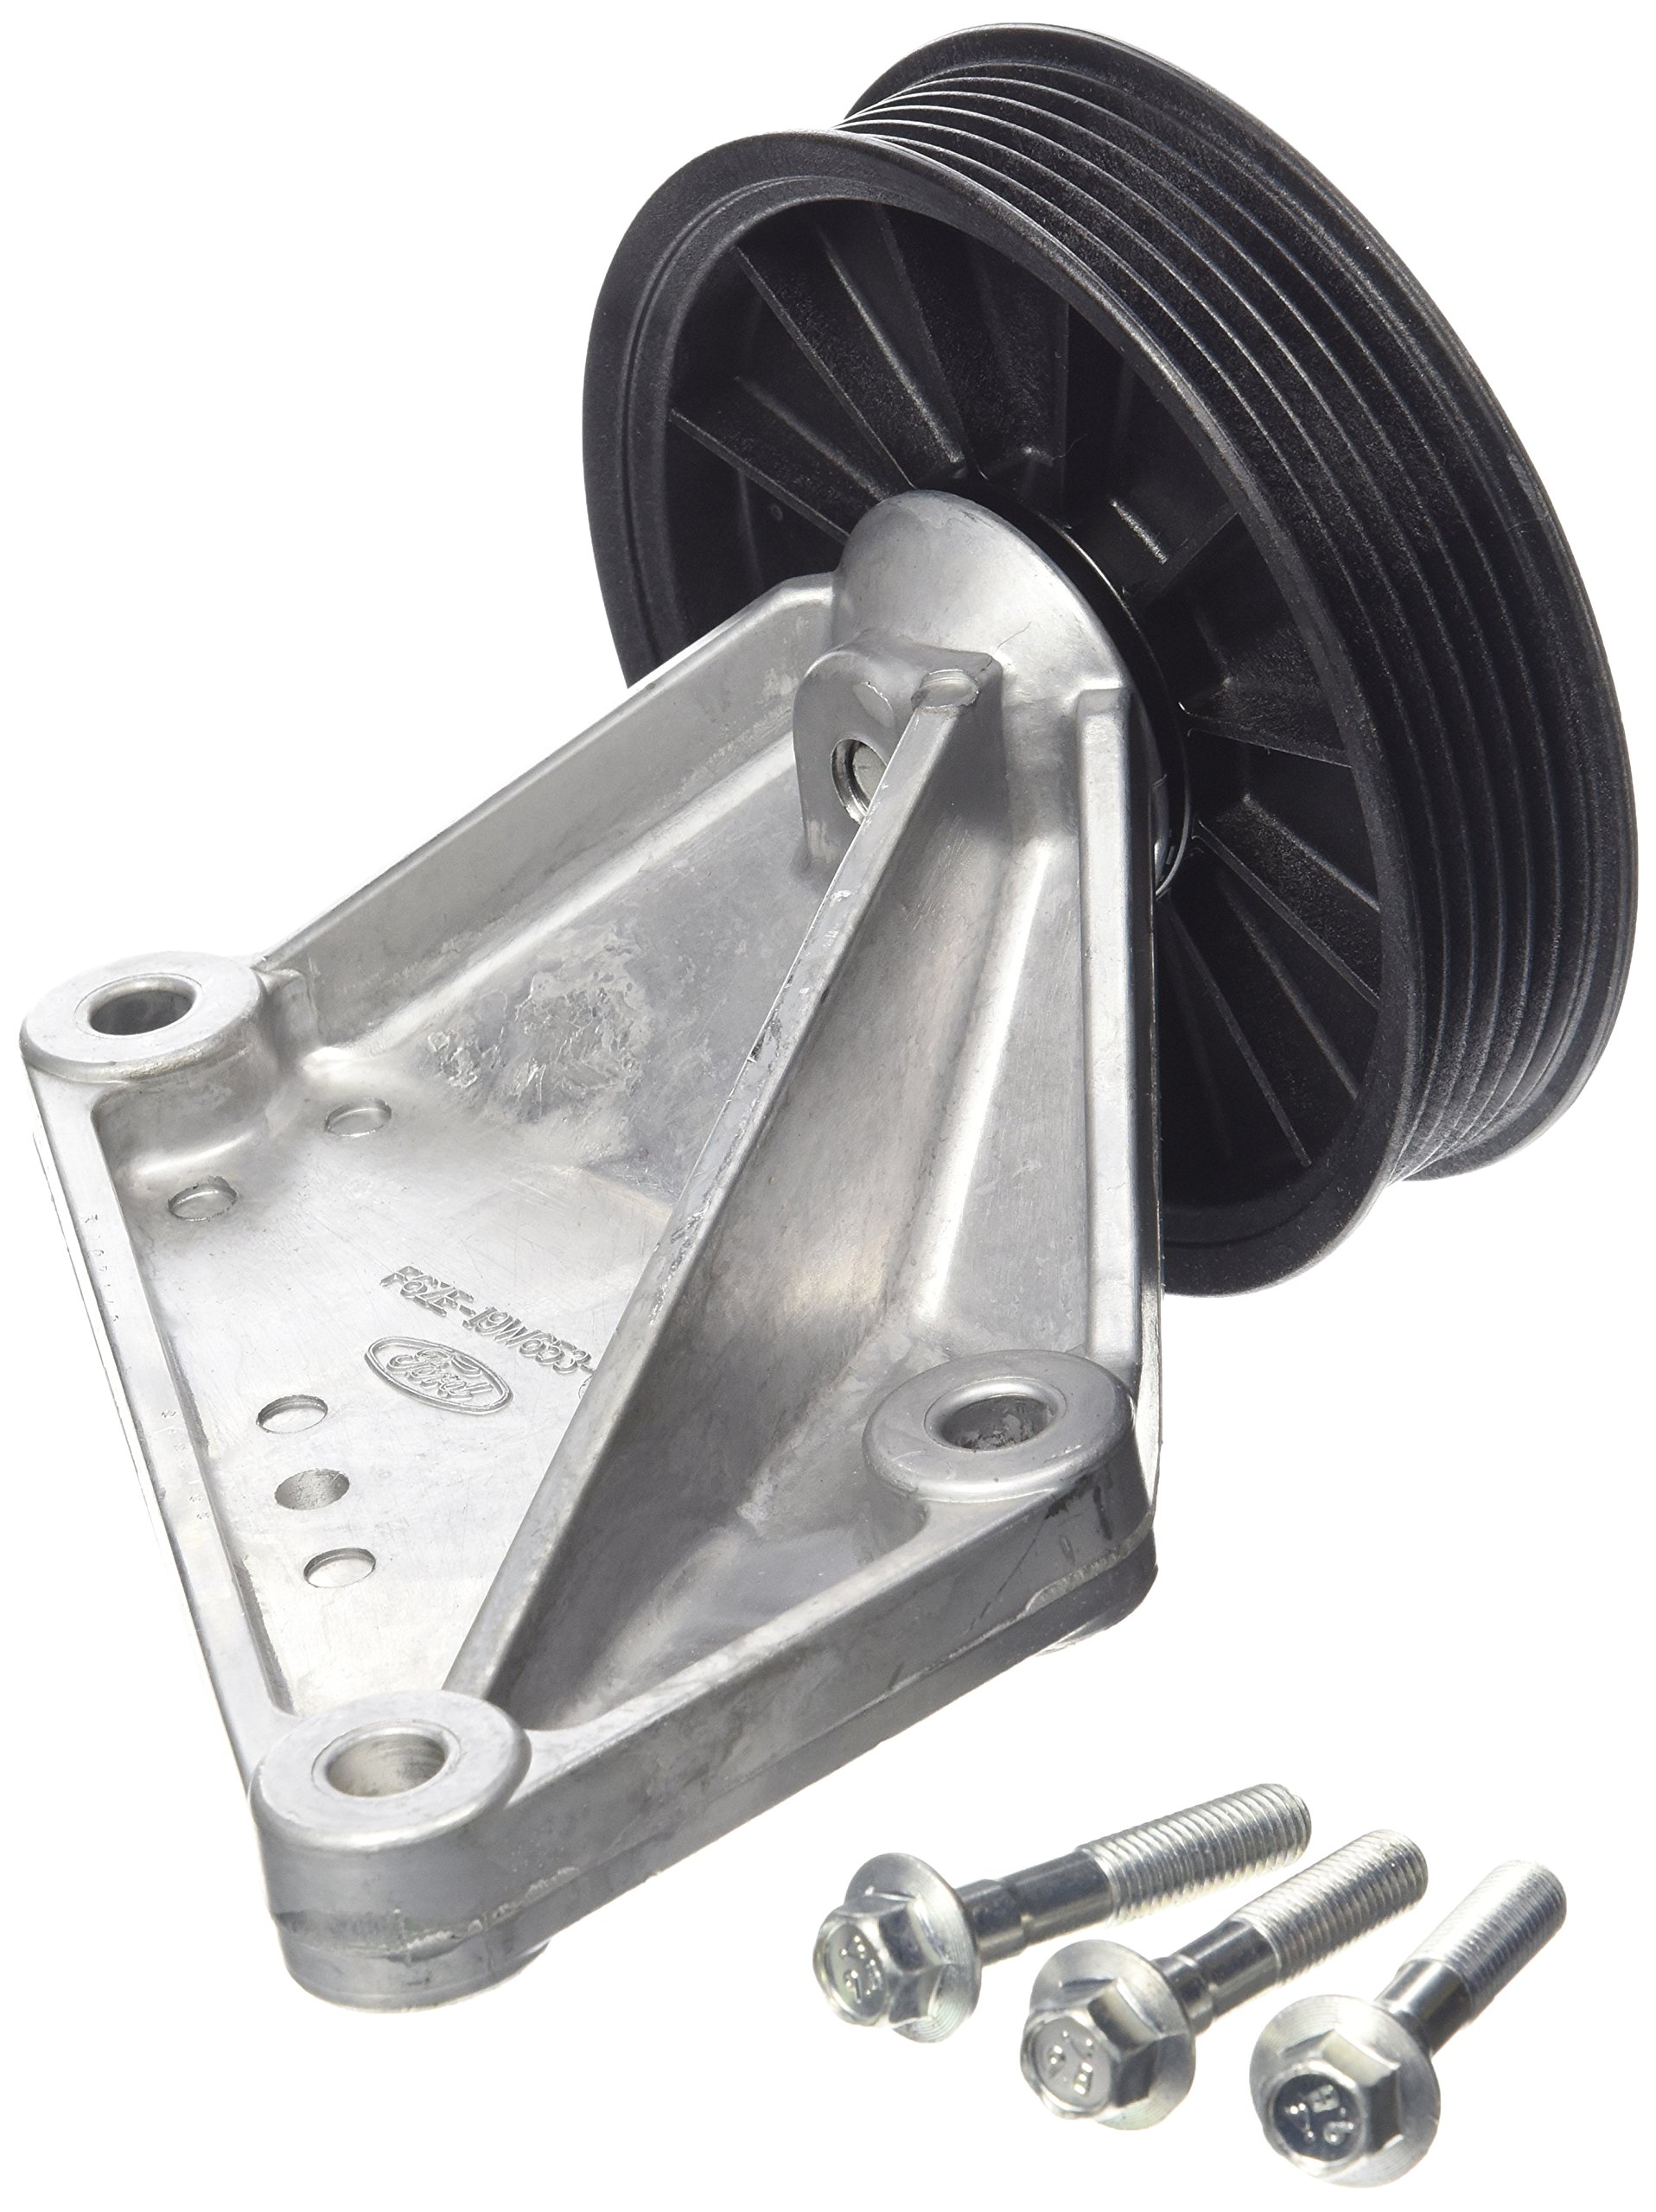 Ford Racing (M19216-D46) AC Eliminator Kit for Ford Mustang with 4.6L Engine by Ford (Image #1)